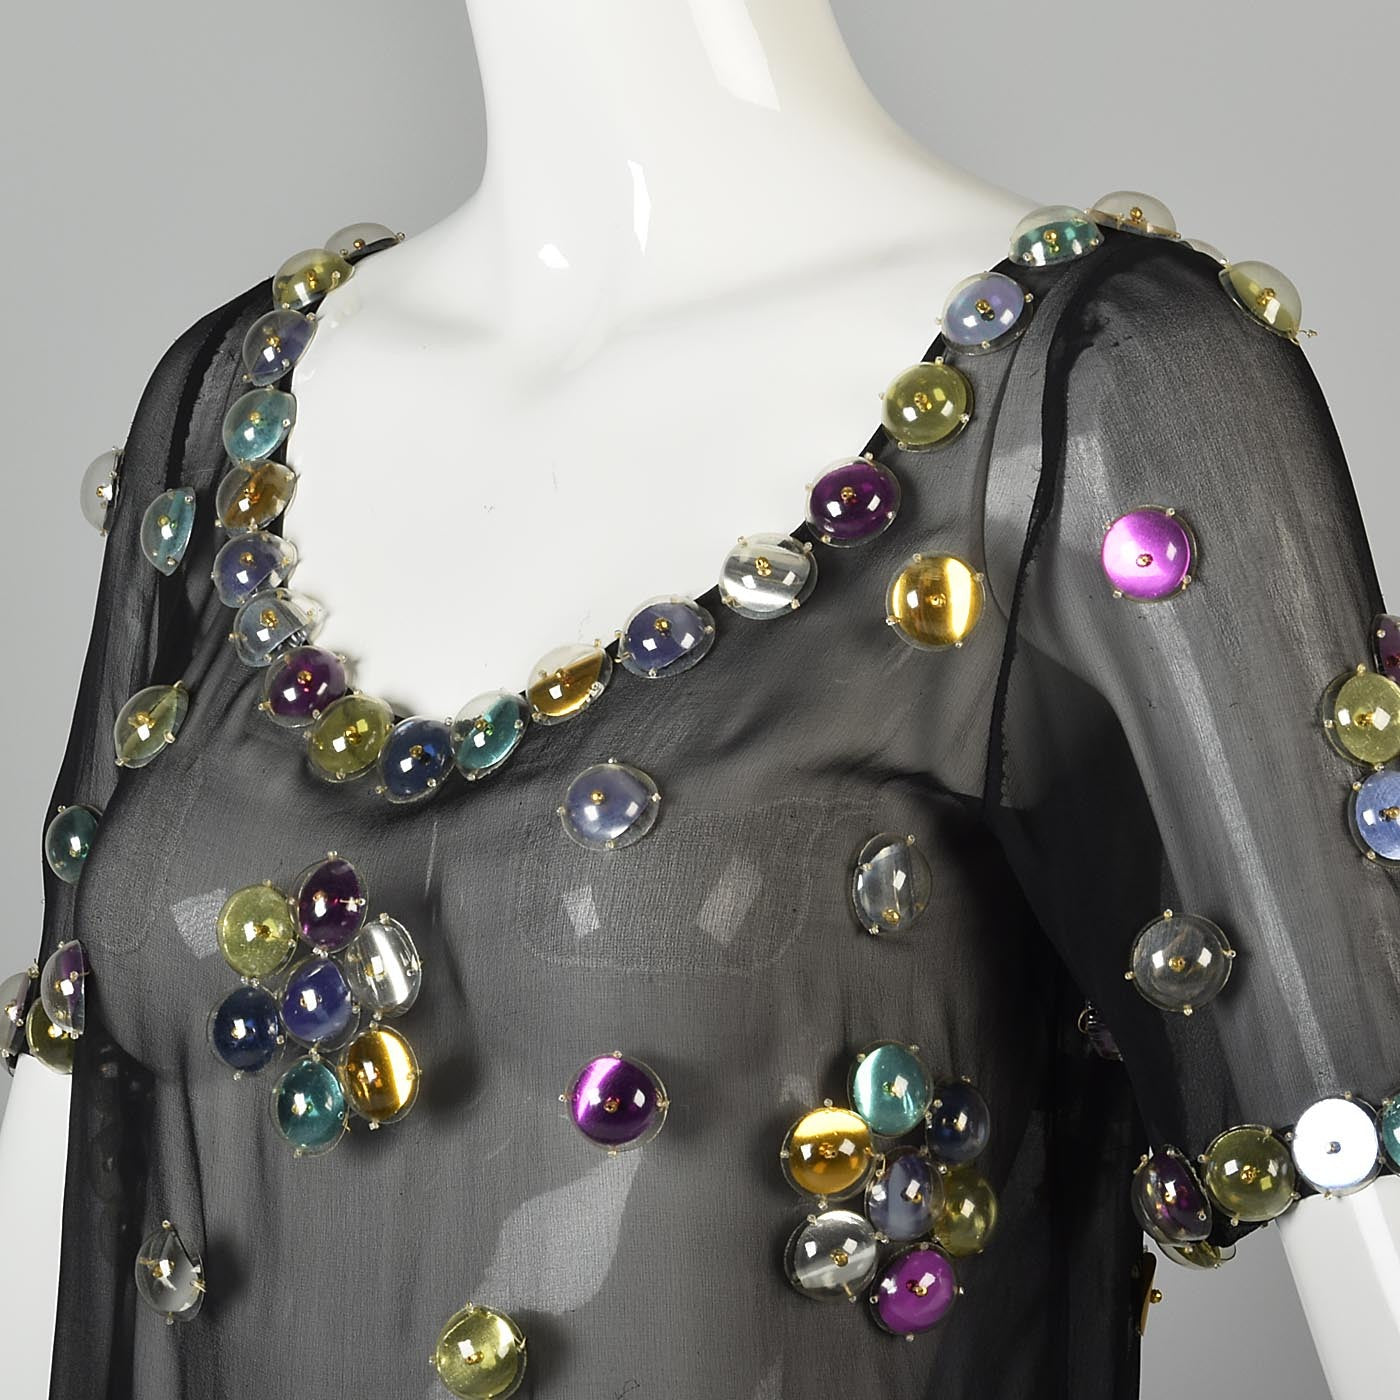 1960s Space Age Mod Sheer Silk Blouse with Bubble Sequins